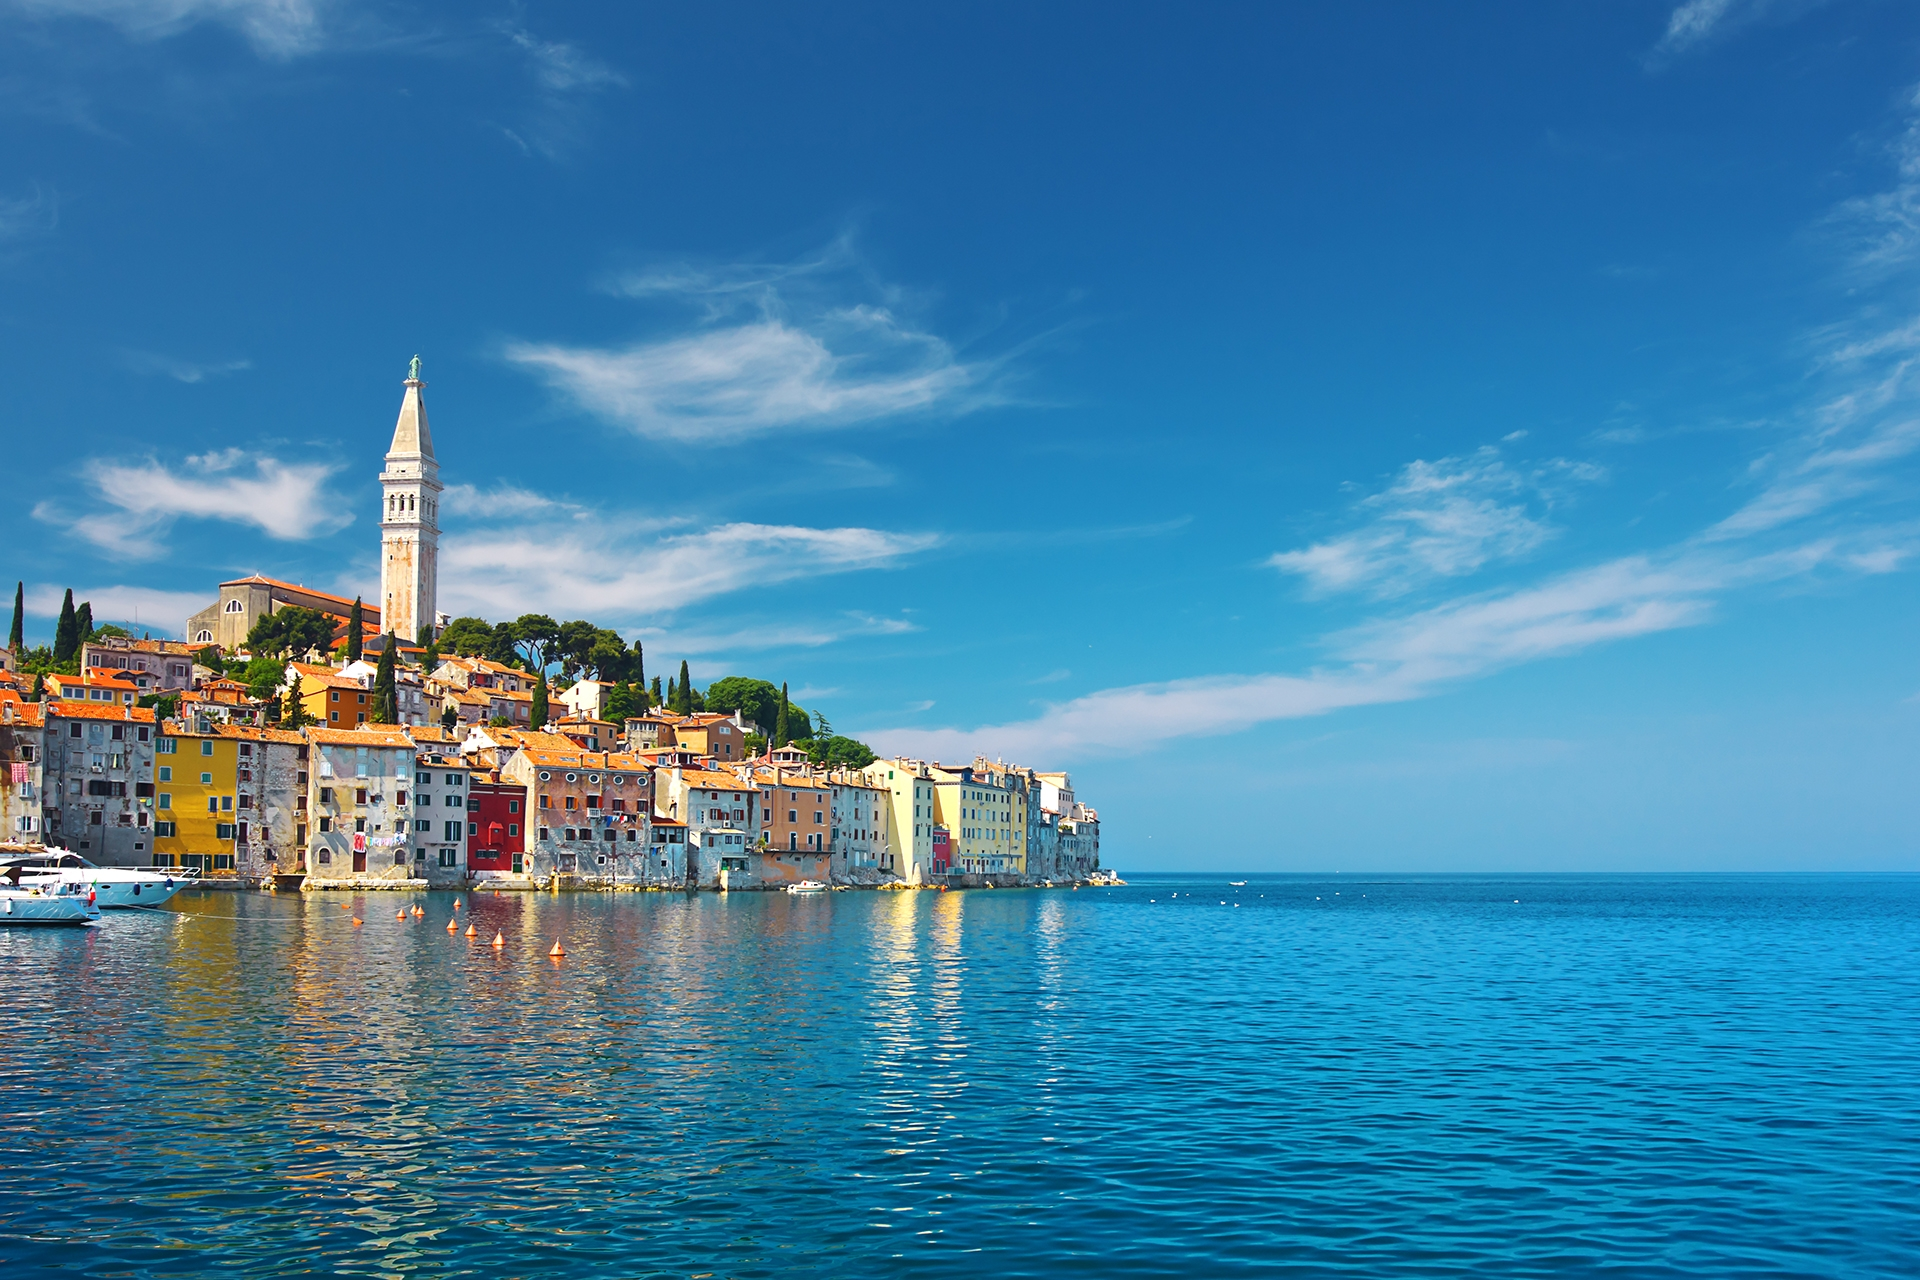 View-of-Rovinj-Croatia